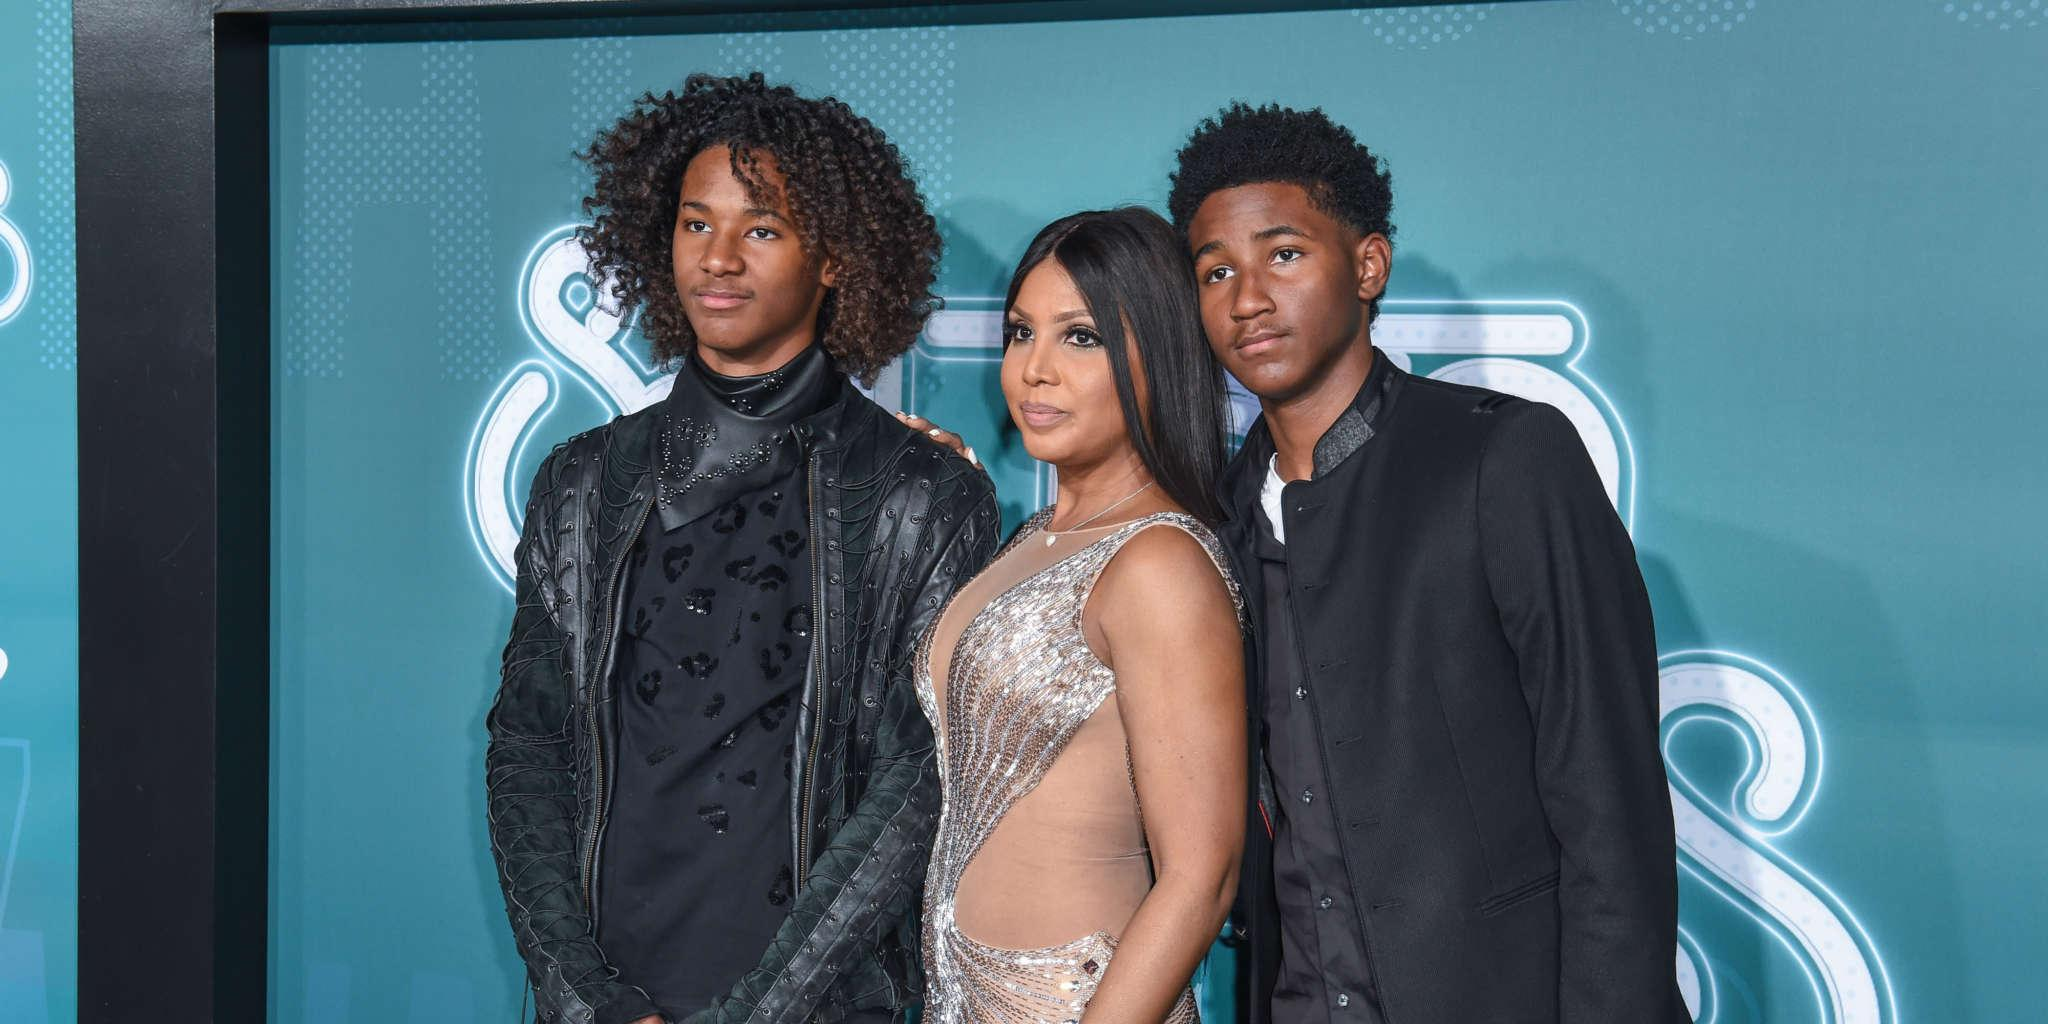 Toni Braxton Publicly Professes The Love For Her Sons - Read Her Message